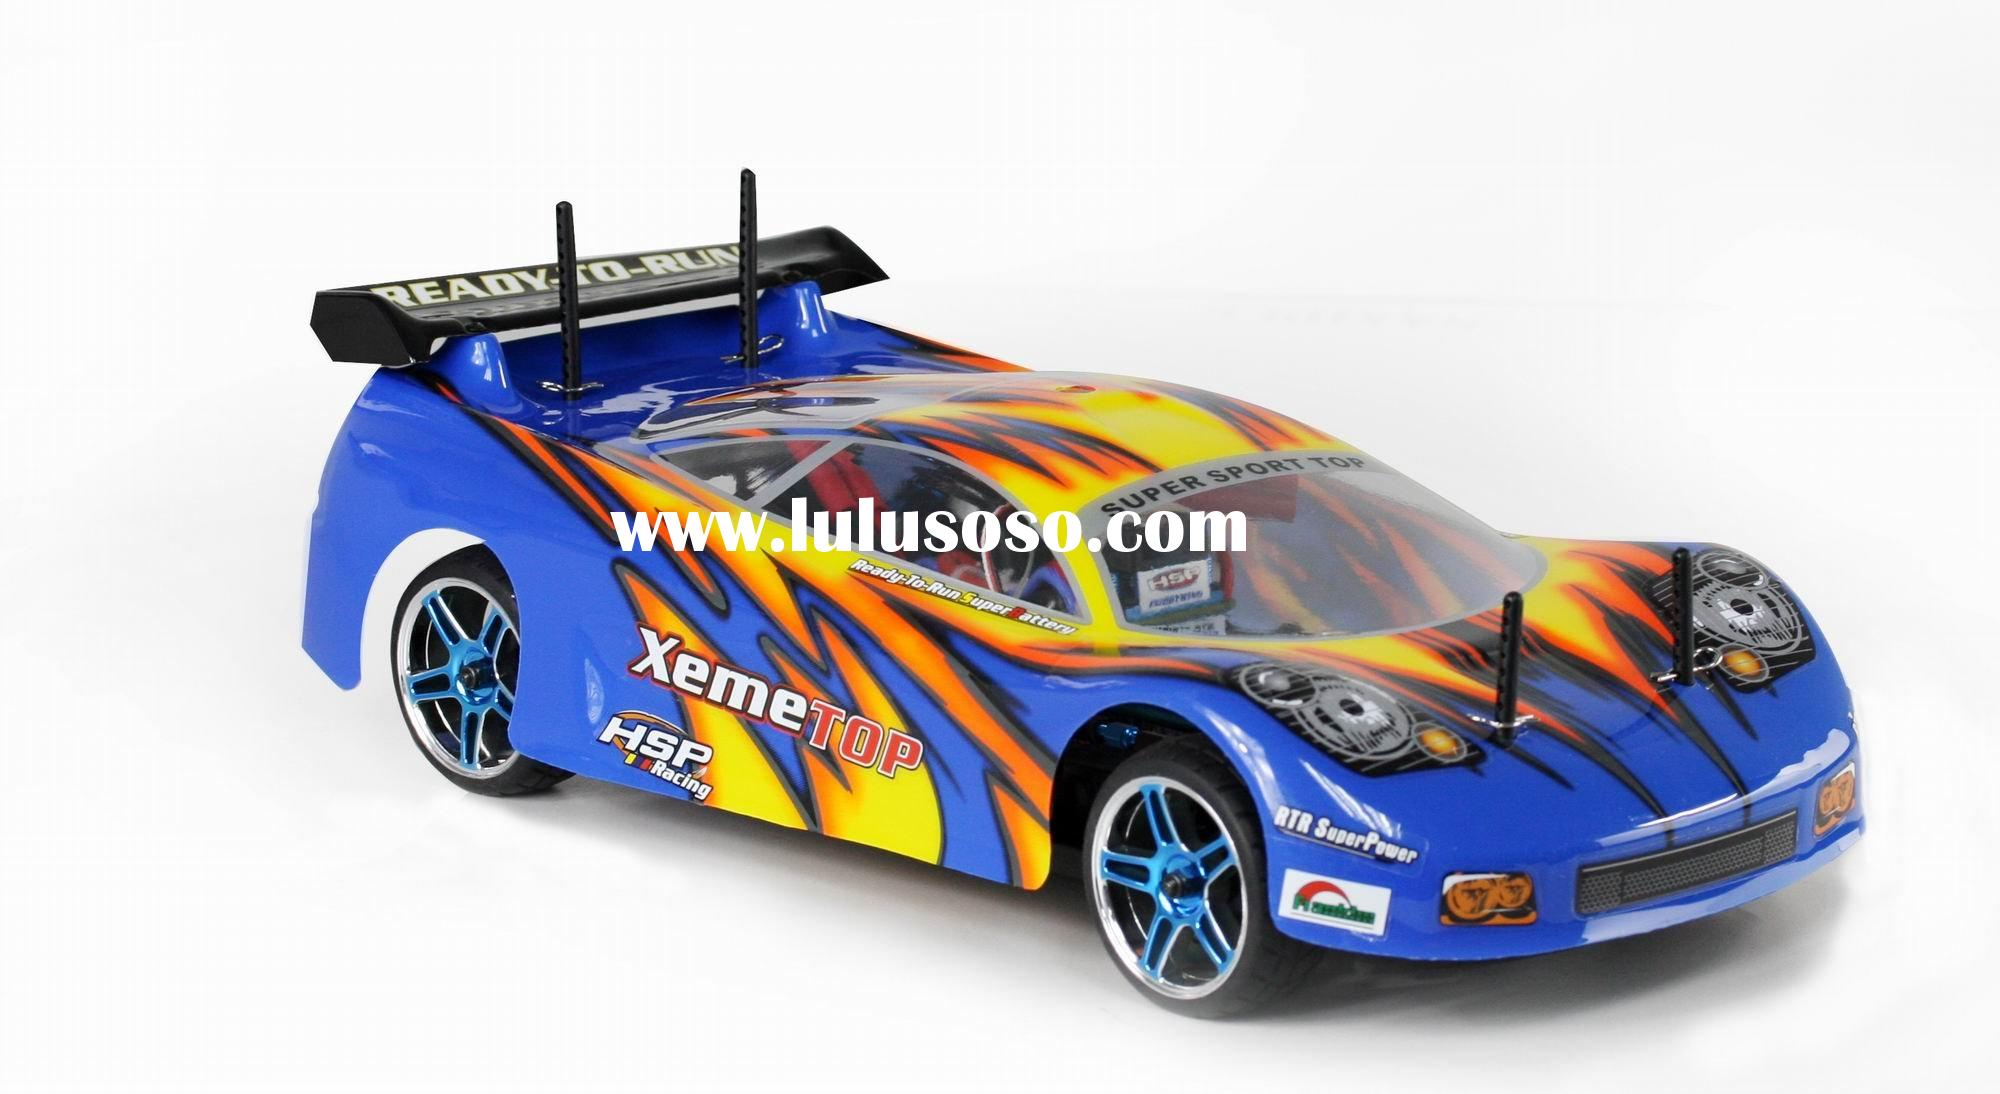 1/10 TOP RC Brushless On-Road Car